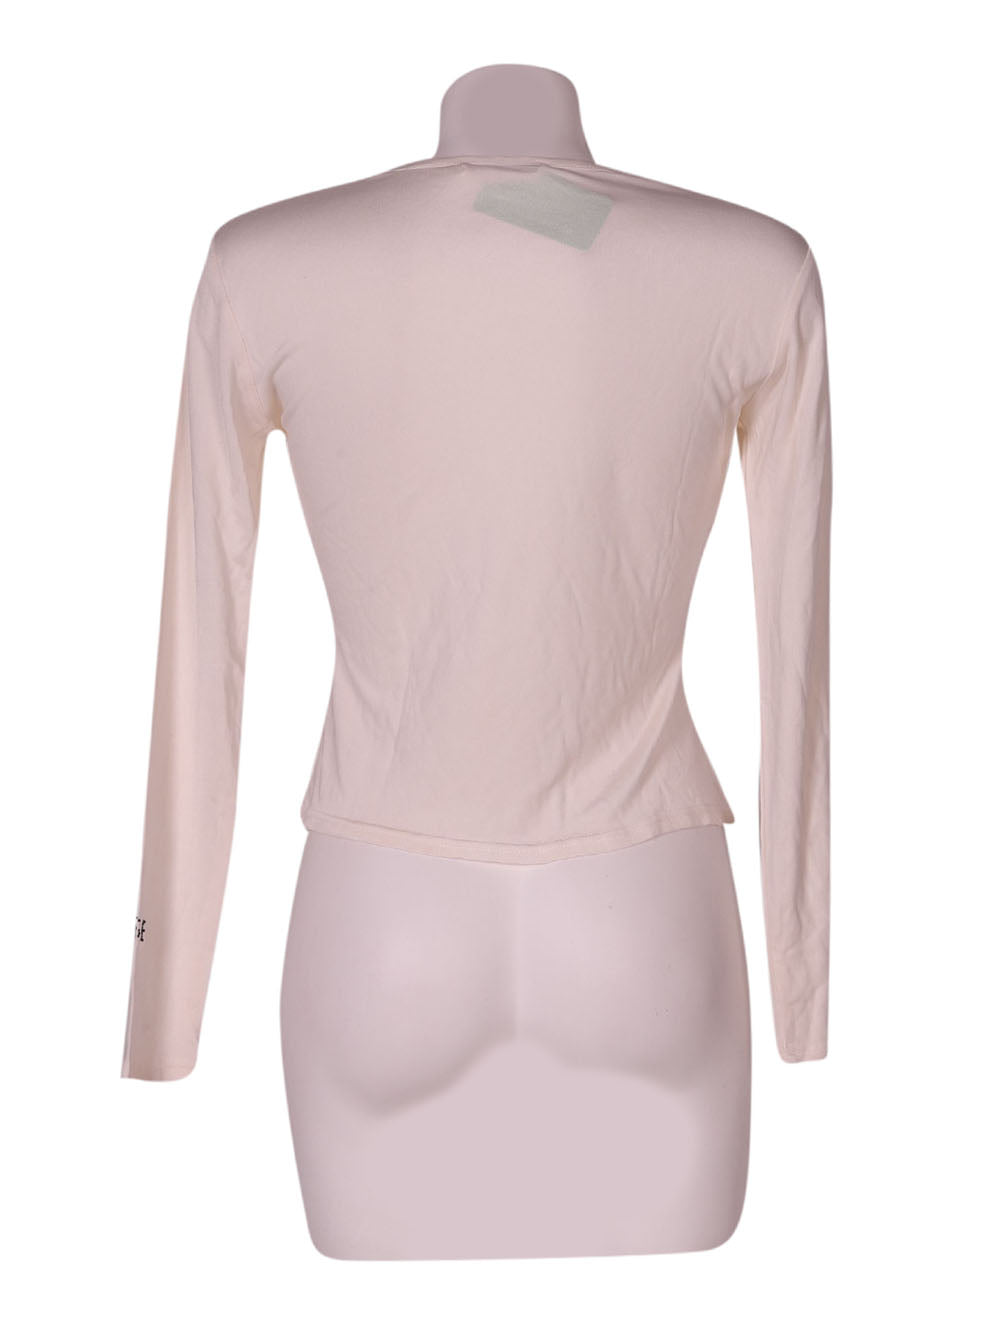 Back photo of Preloved Basile Beige Woman's long sleeved shirt - size 10/M